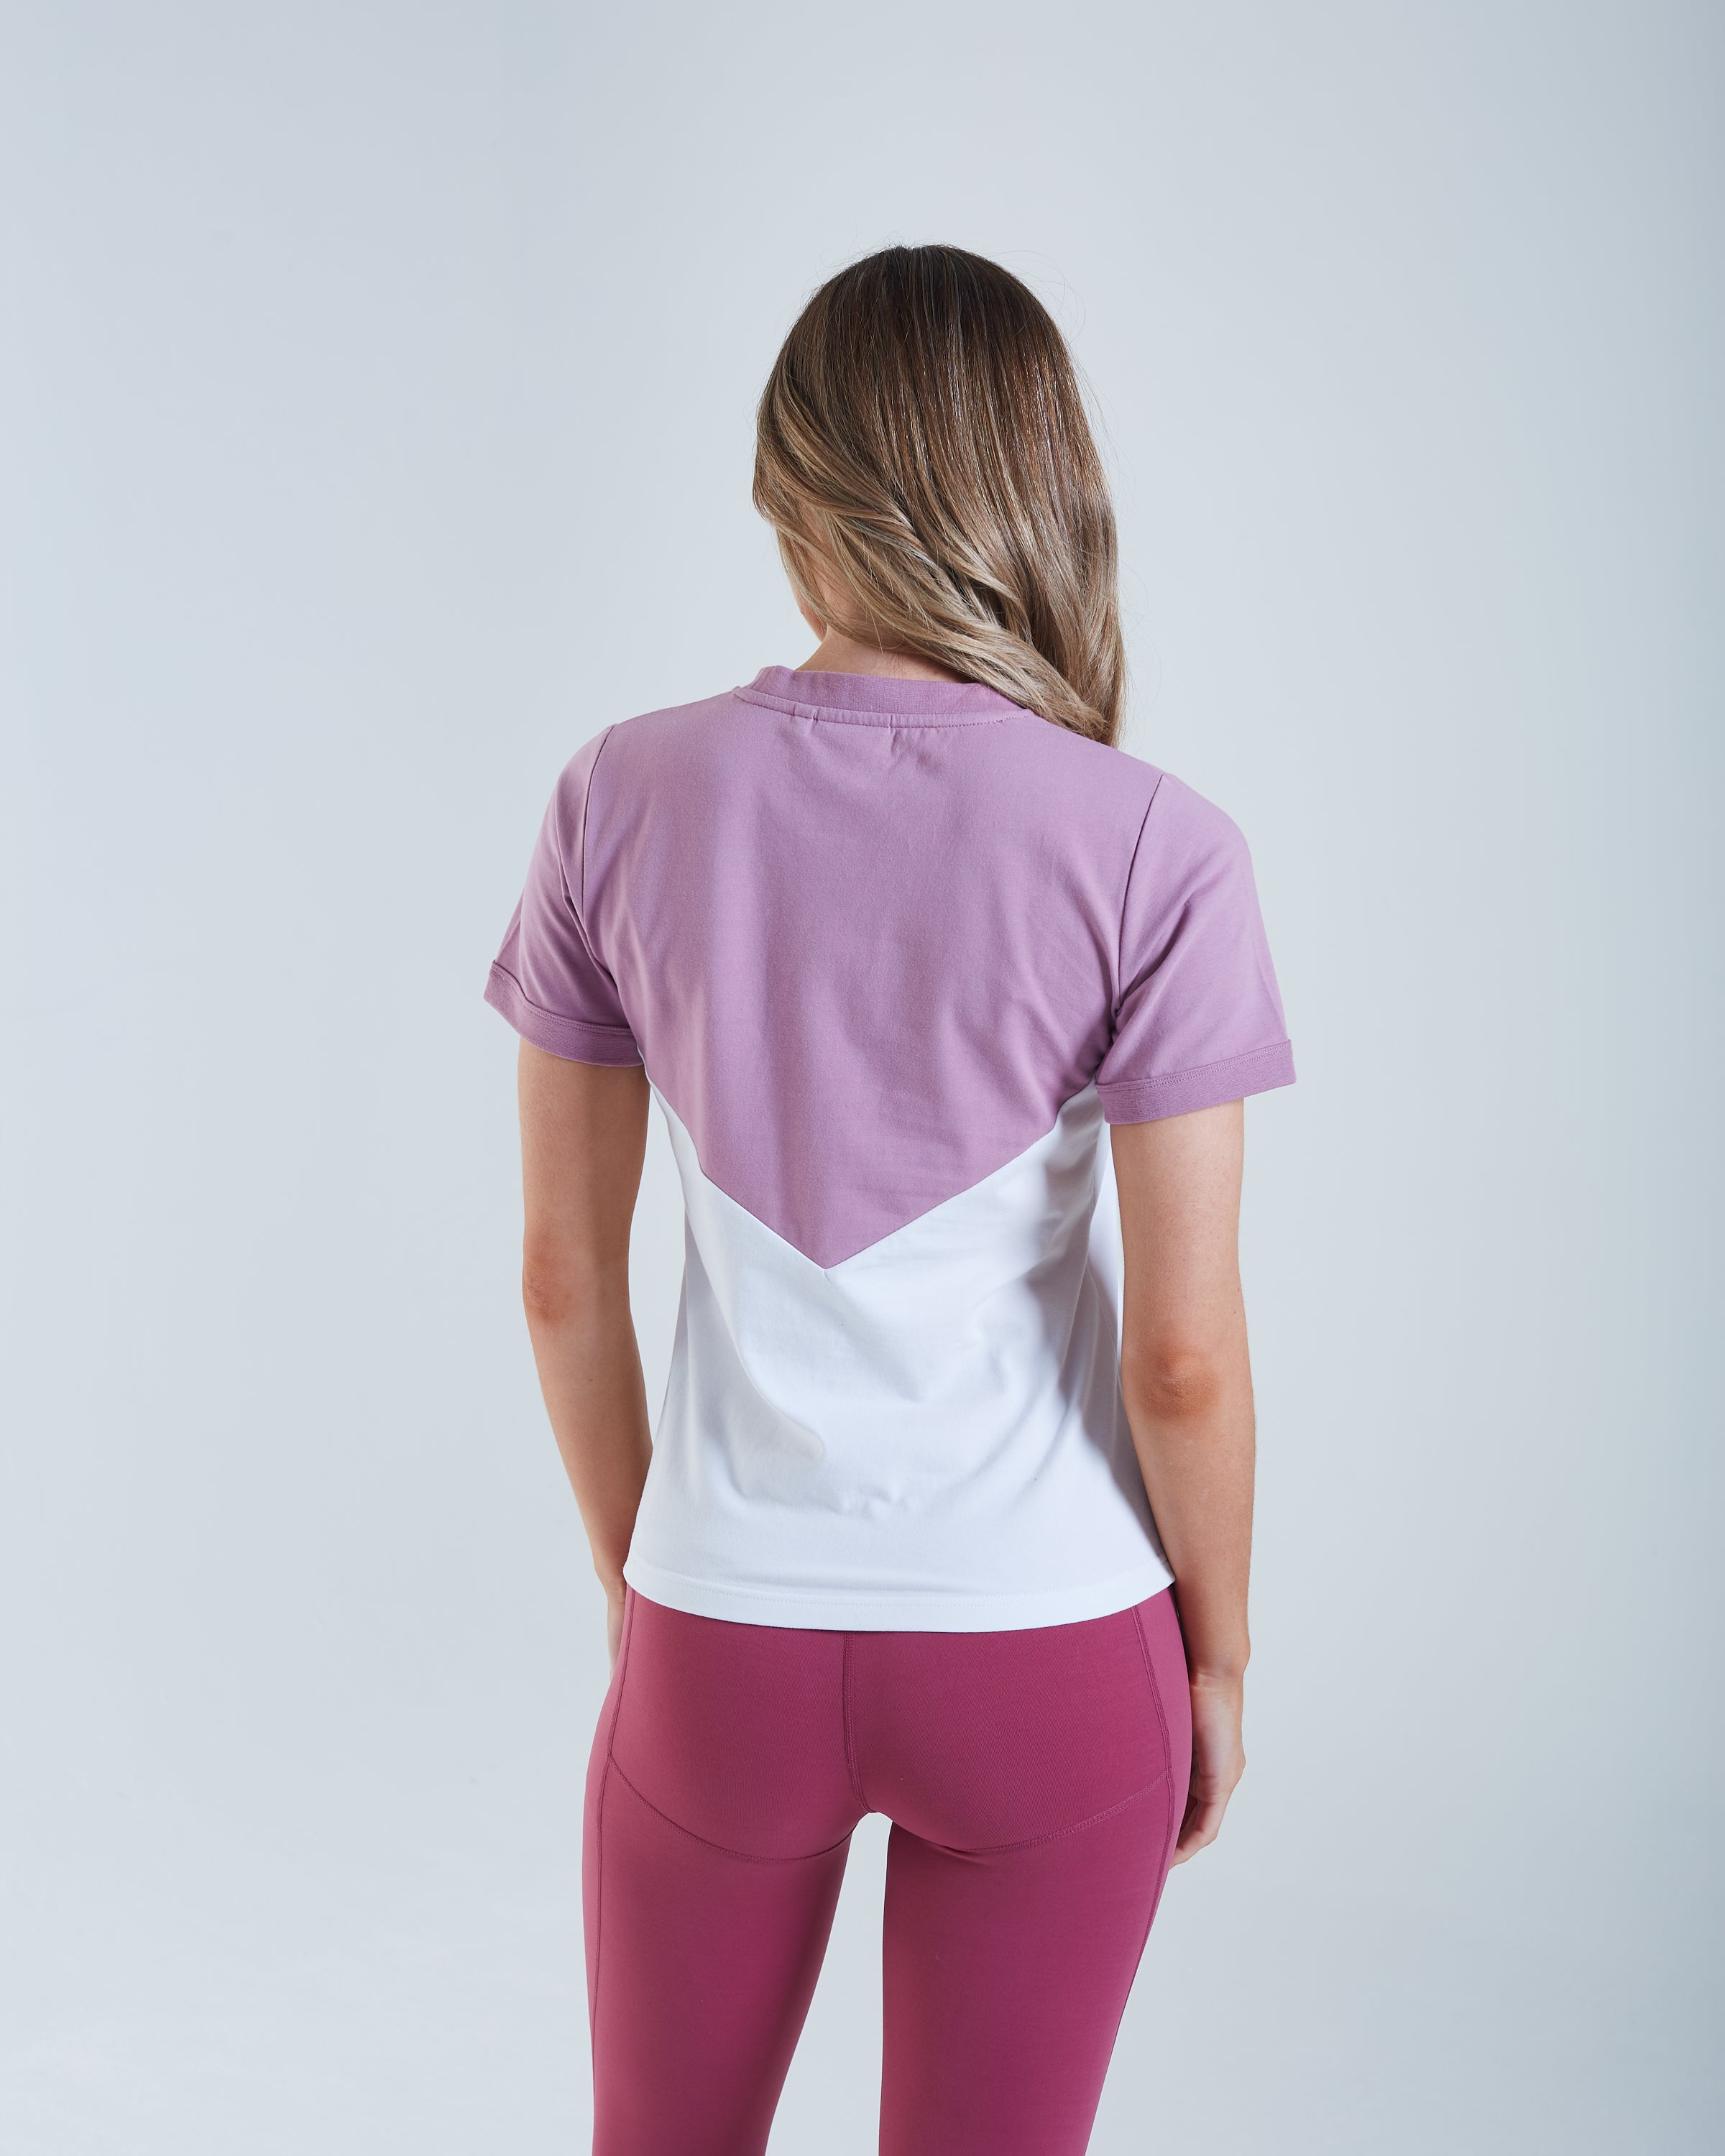 Chrysta T-Shirt Mauve / White